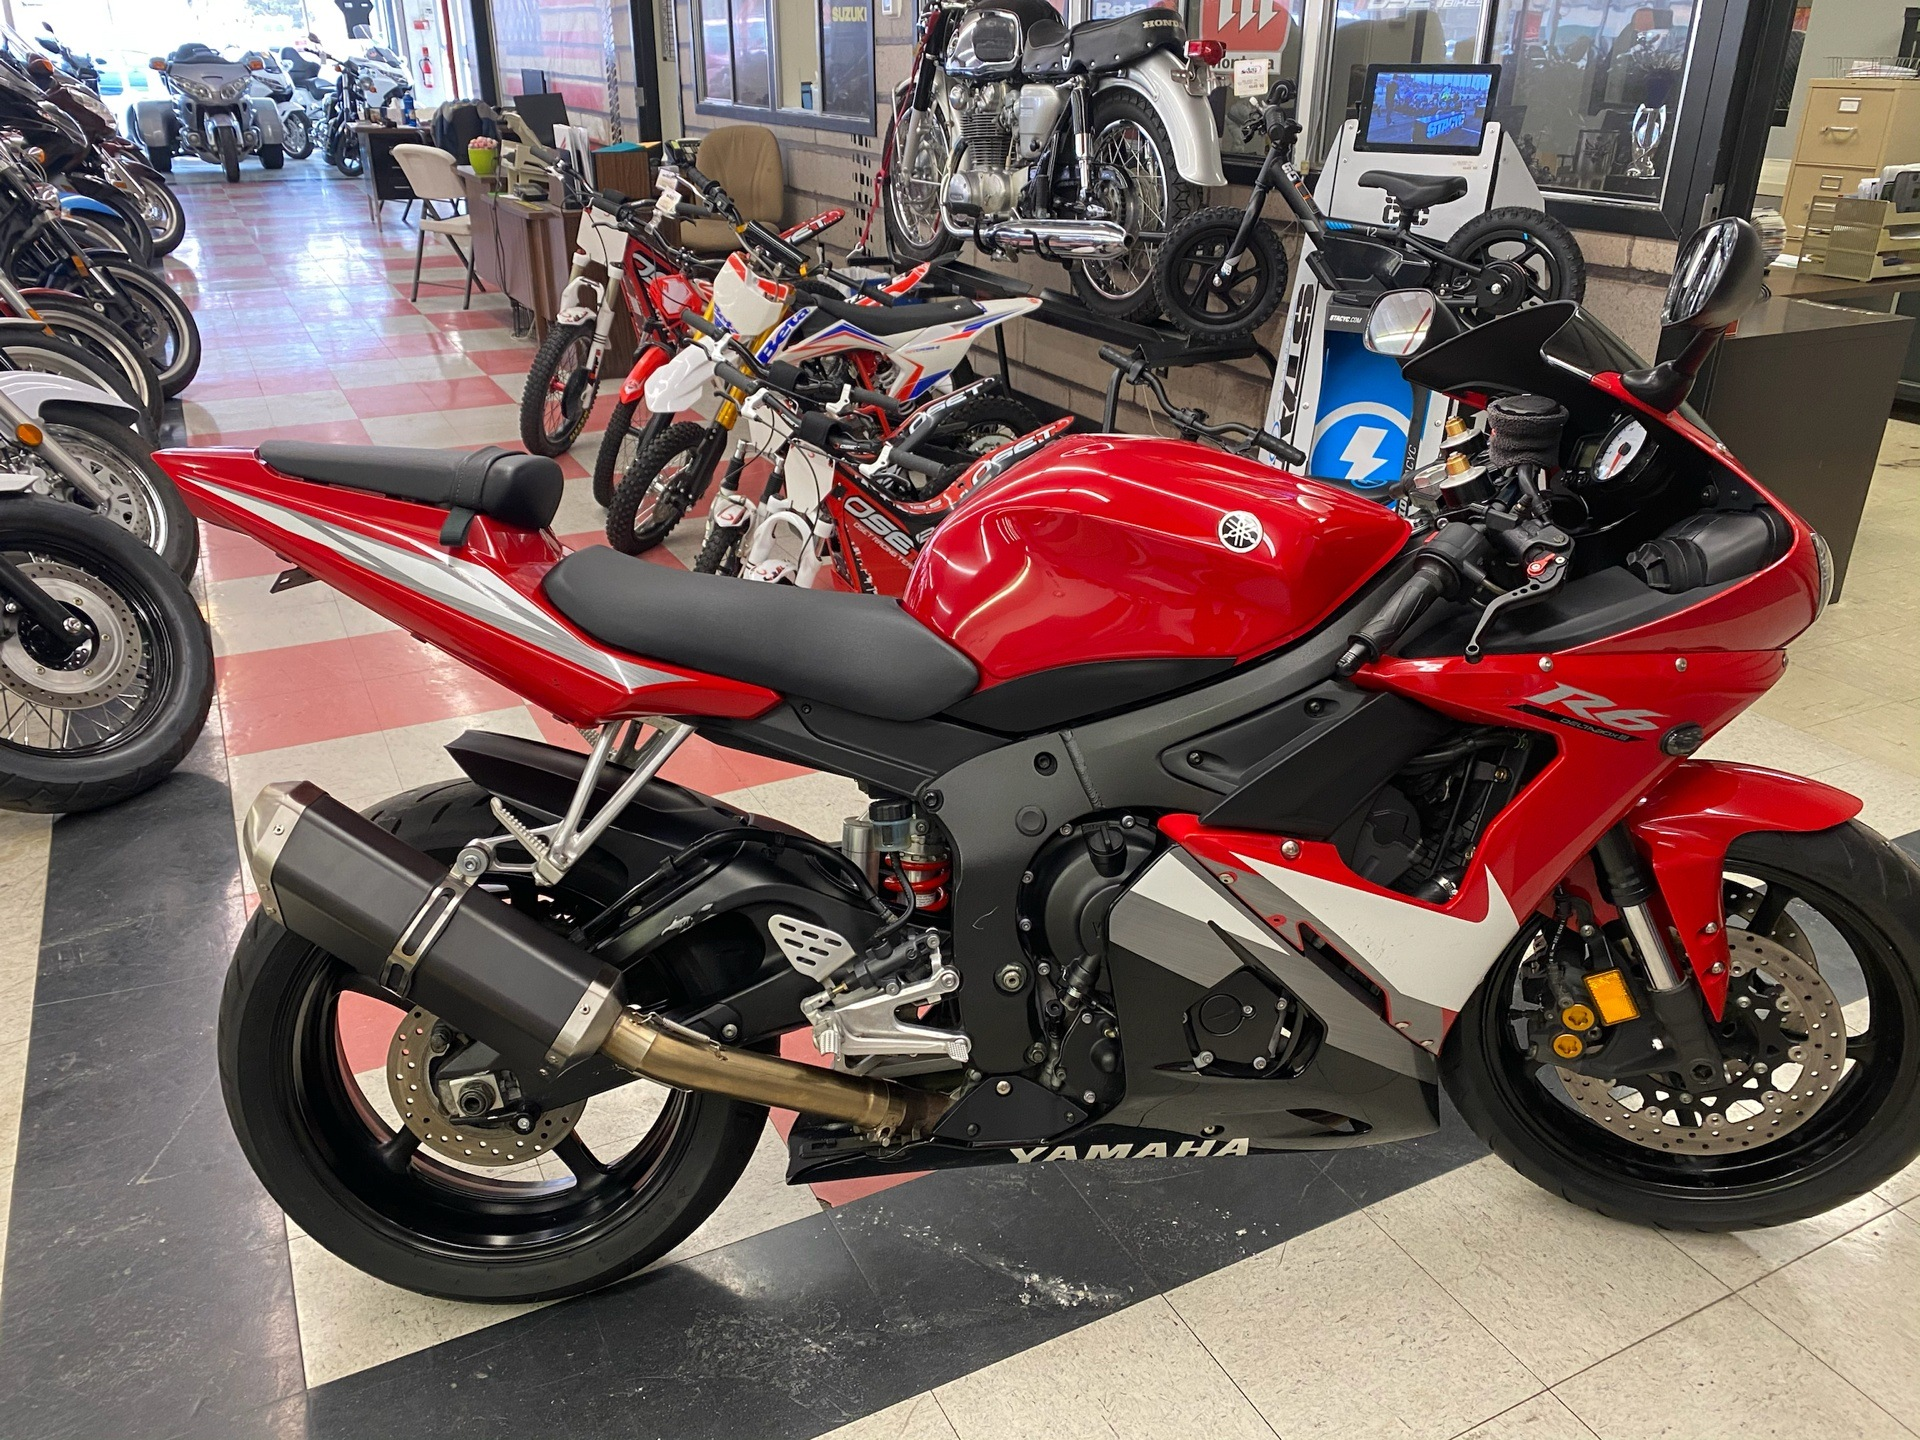 2005 Yamaha YZF-R6 for sale 288321